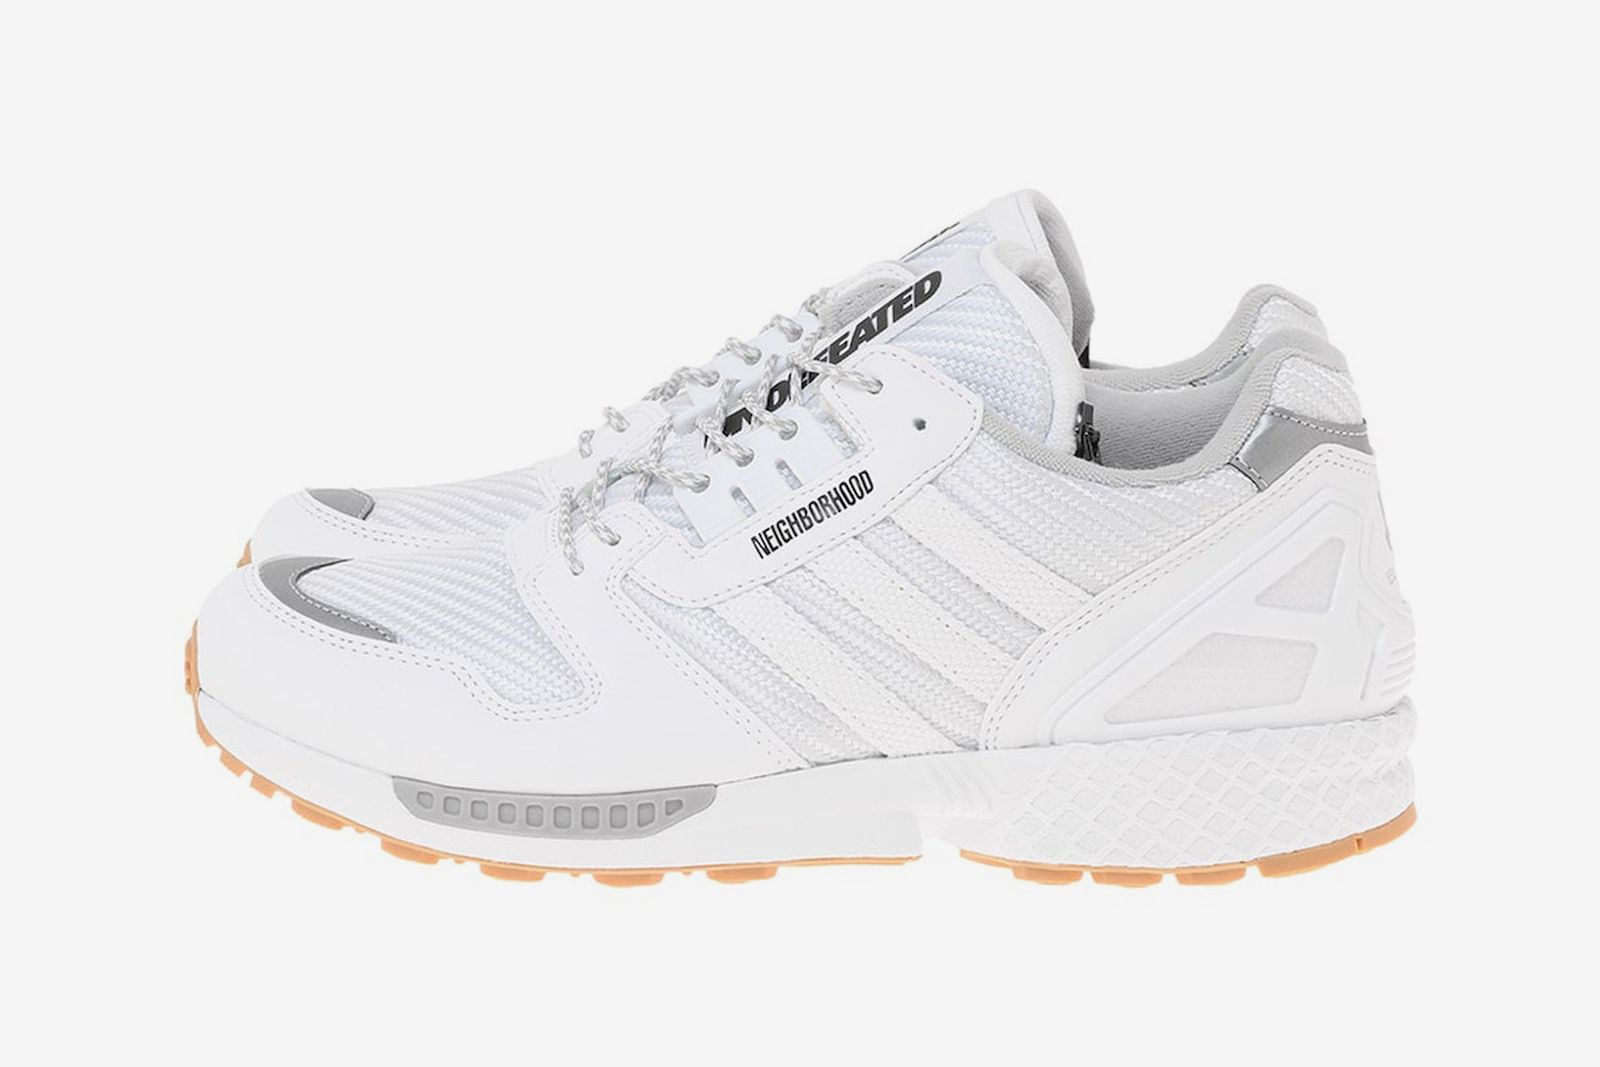 neighborhood-undefeated-adidas-zx-collaboration-release-date-price-01